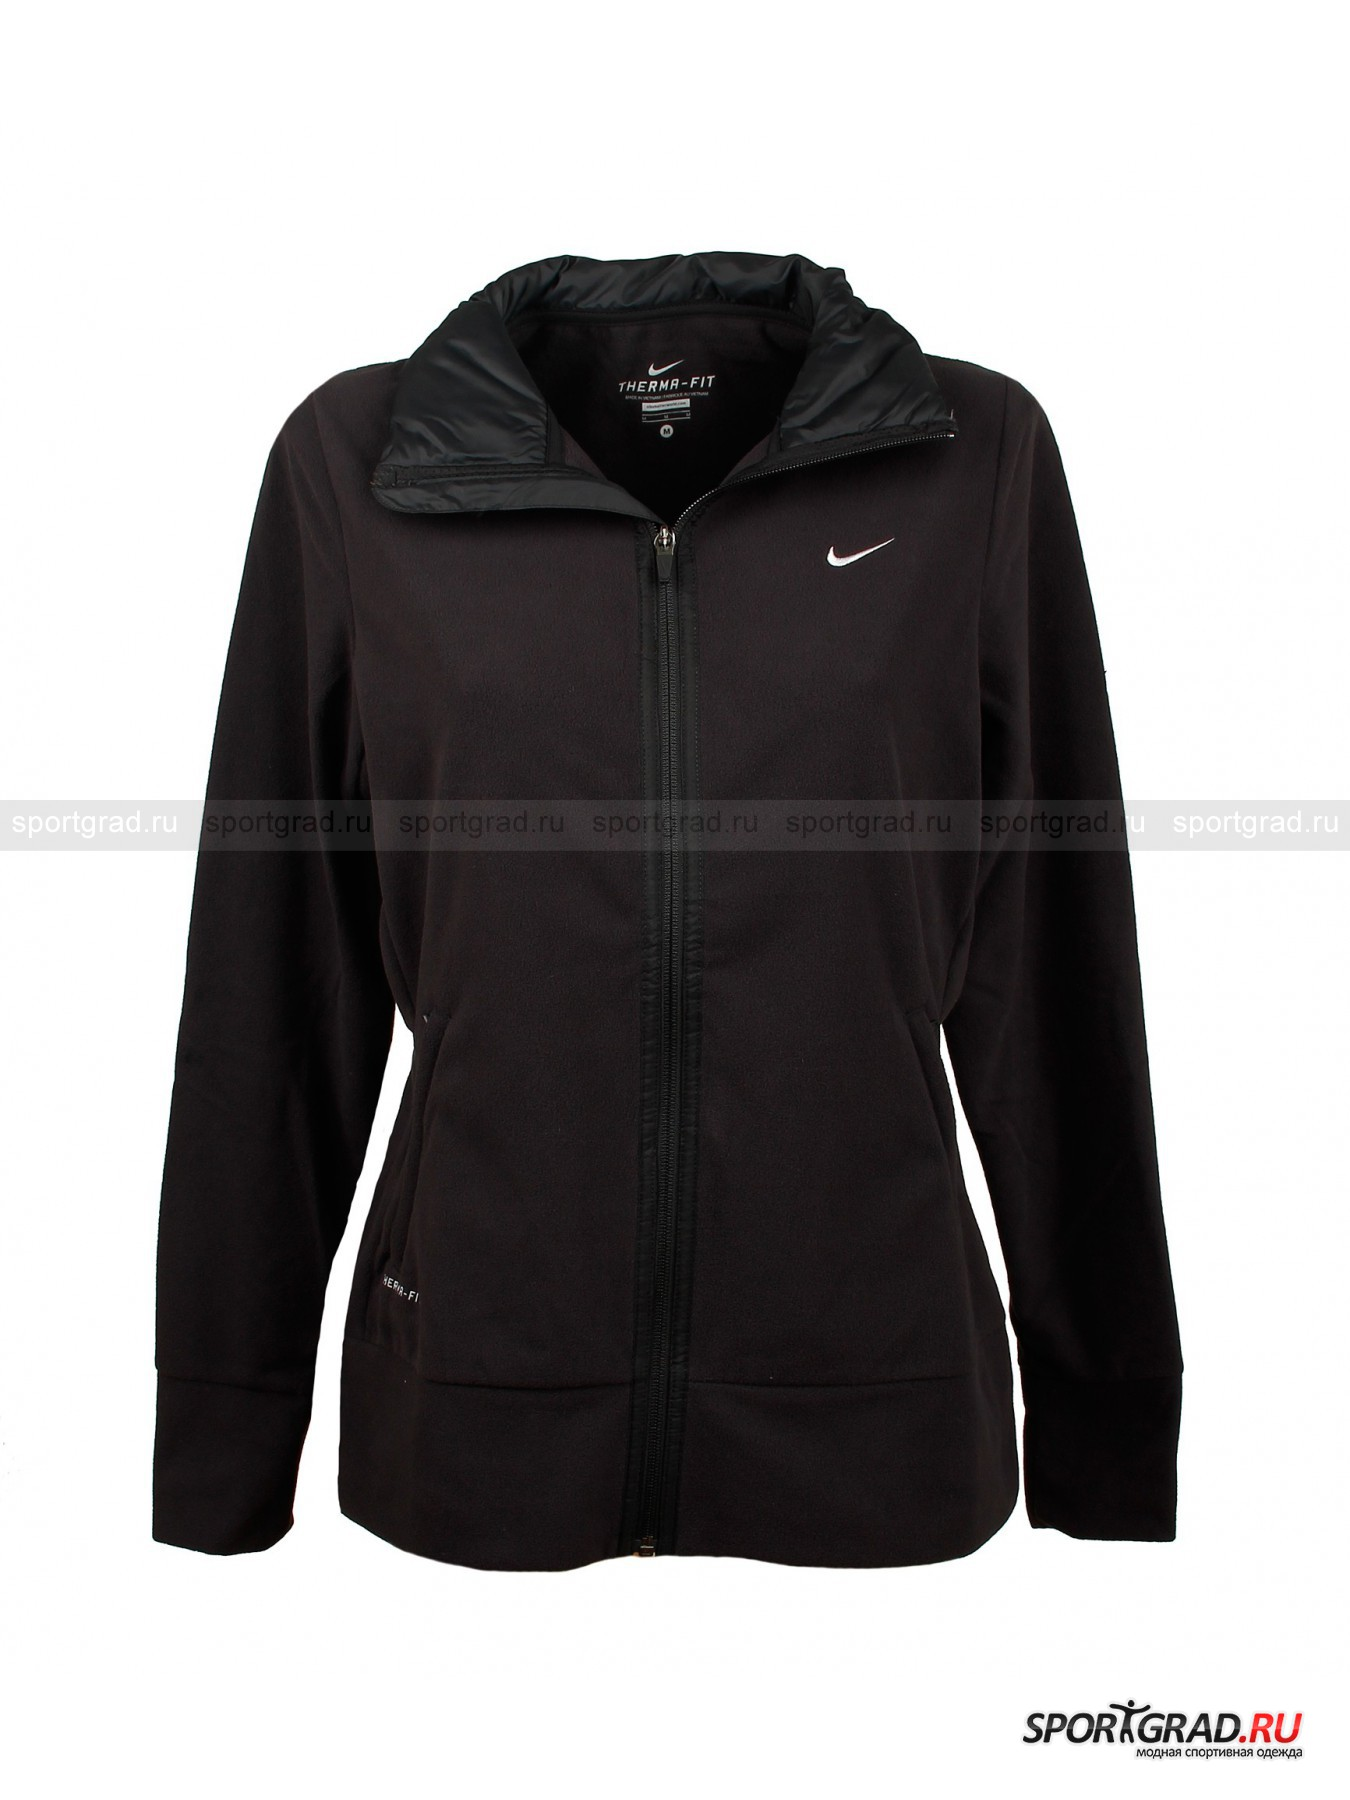 Куртка женская THERMA-FIT F/Z MID LAYER NIKE